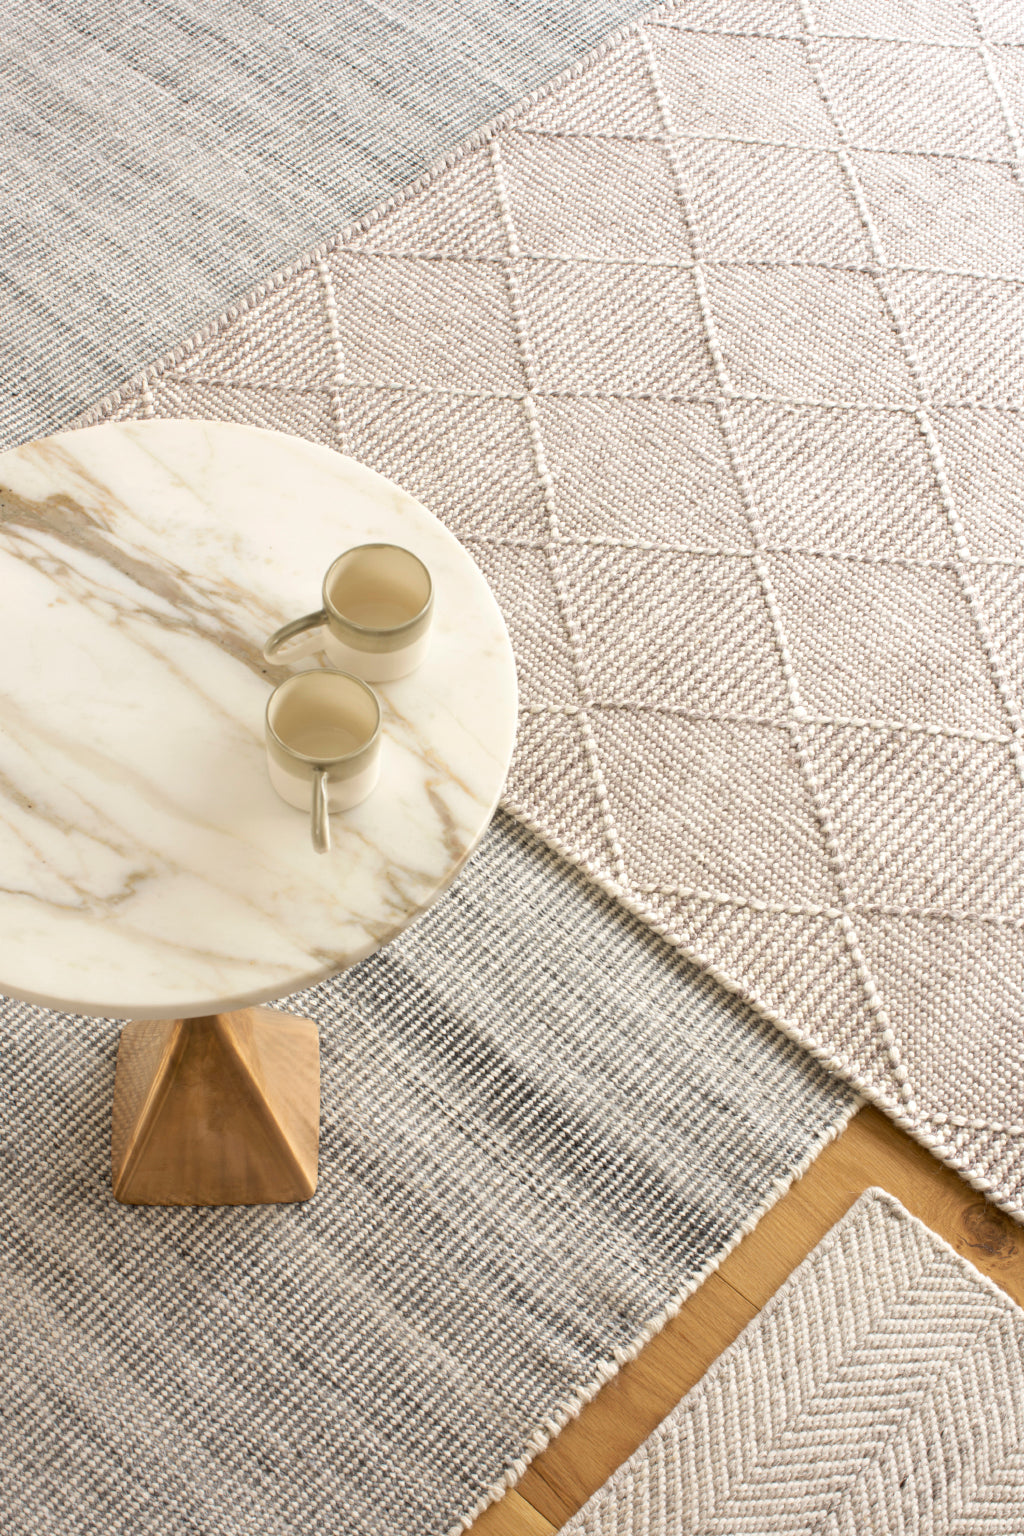 CLAIRE GAUDION Artisan Textile Design inspired by nature | Sustainable Rugs